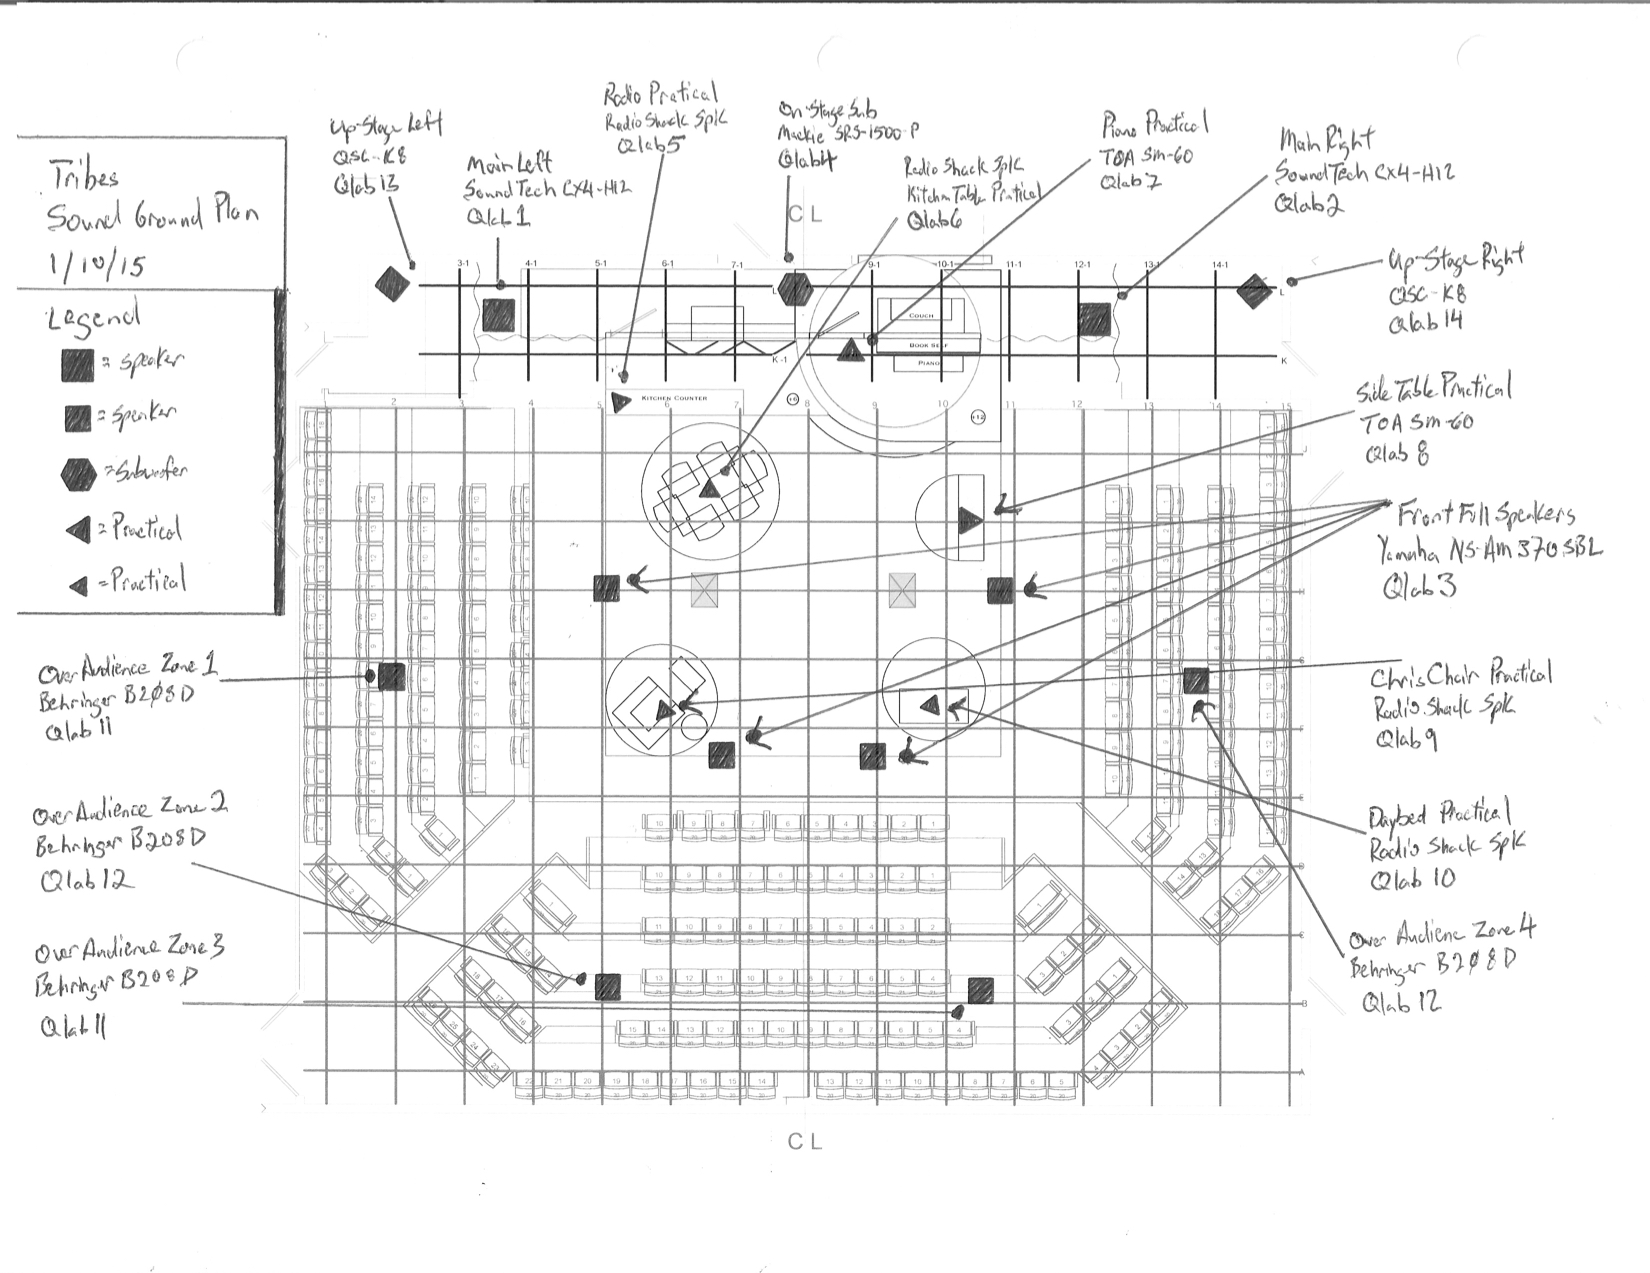 04 TribesSound Ground Plan 01-10-15 Hand Drawn.jpg